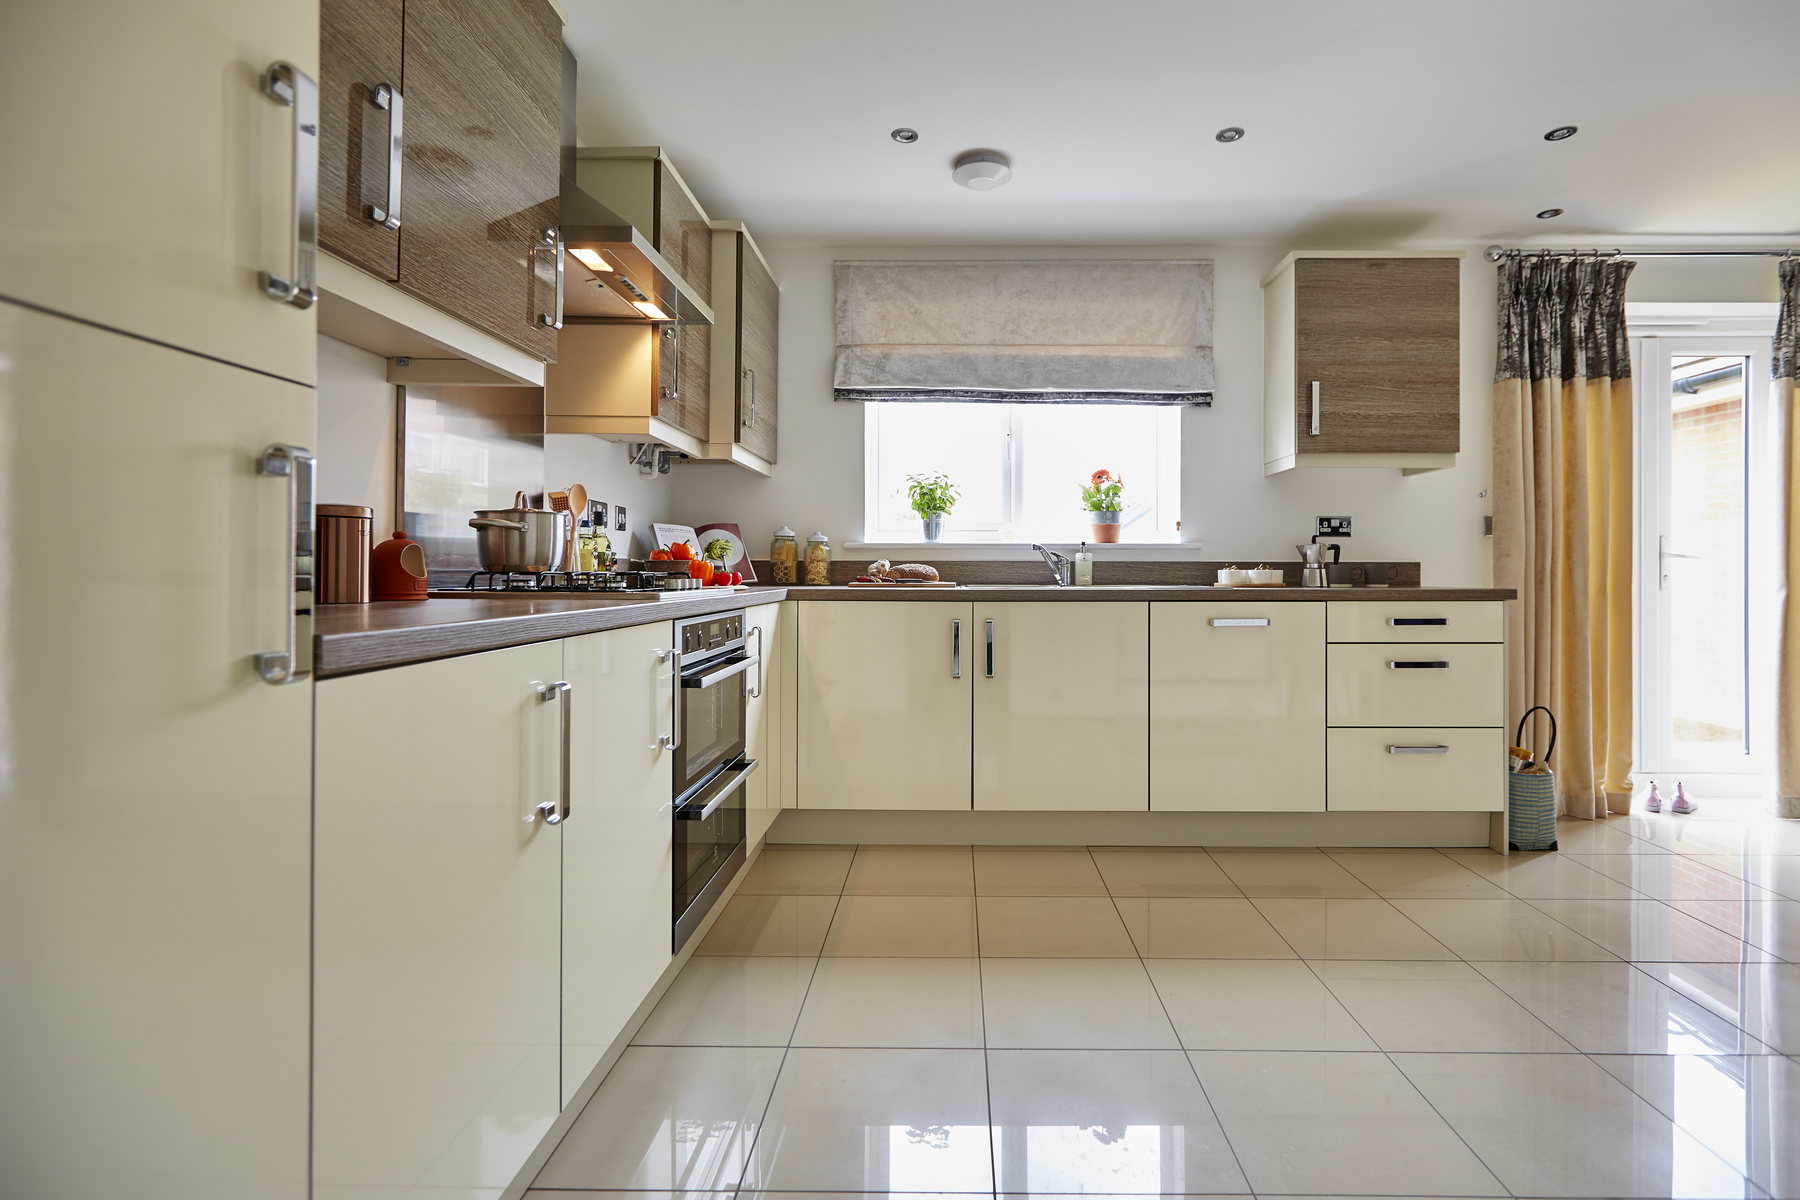 tw_swales_kingsmead_caerphilly_pa44_midford_kitchen